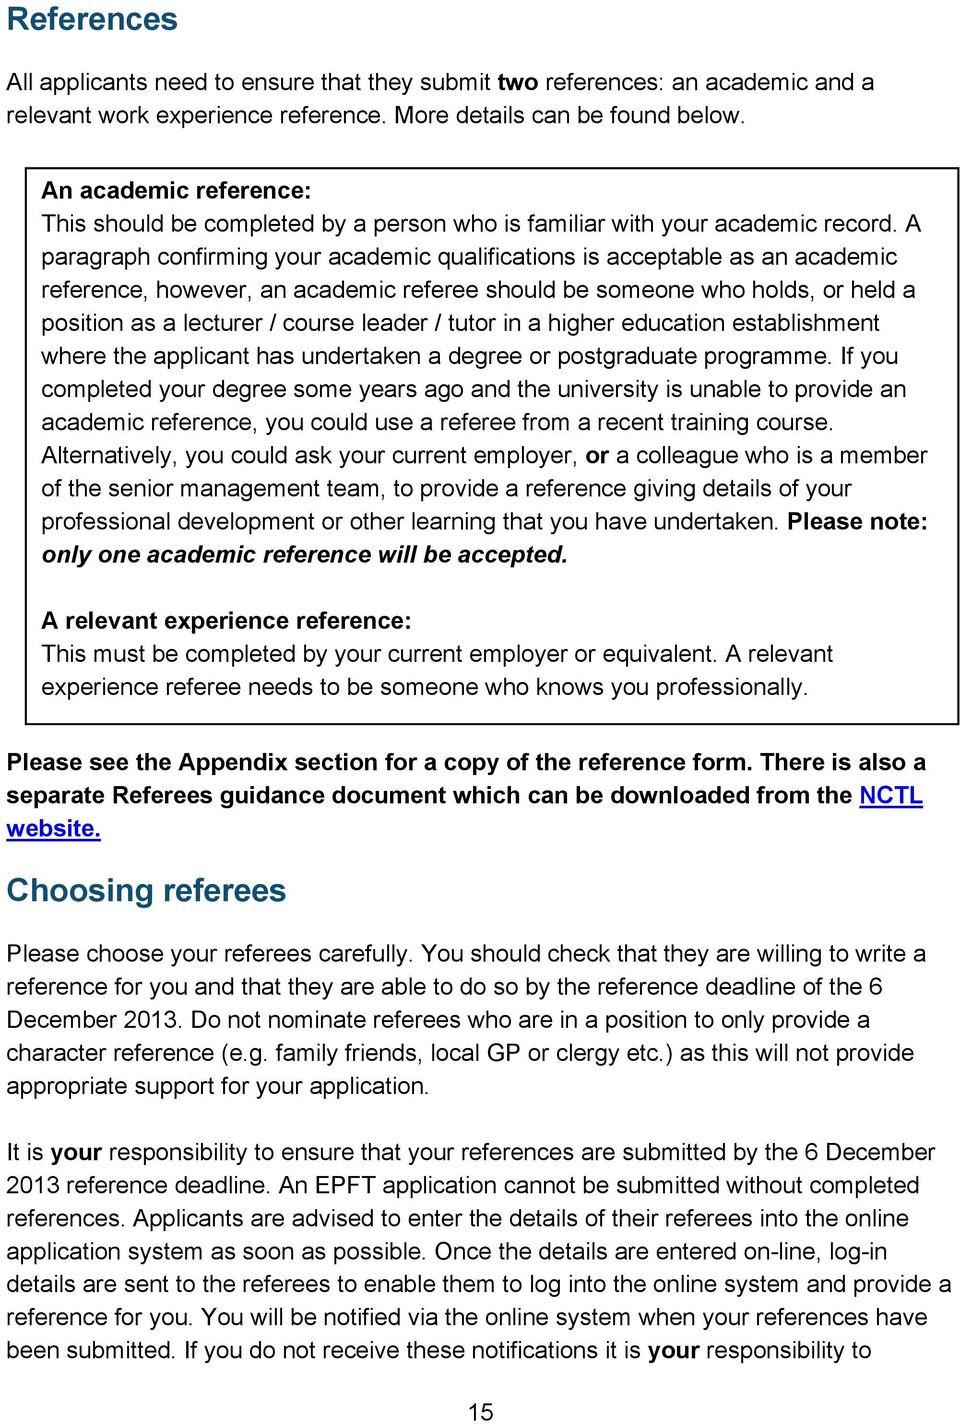 A paragraph confirming your academic qualifications is acceptable as an academic reference, however, an academic referee should be someone who holds, or held a position as a lecturer / course leader